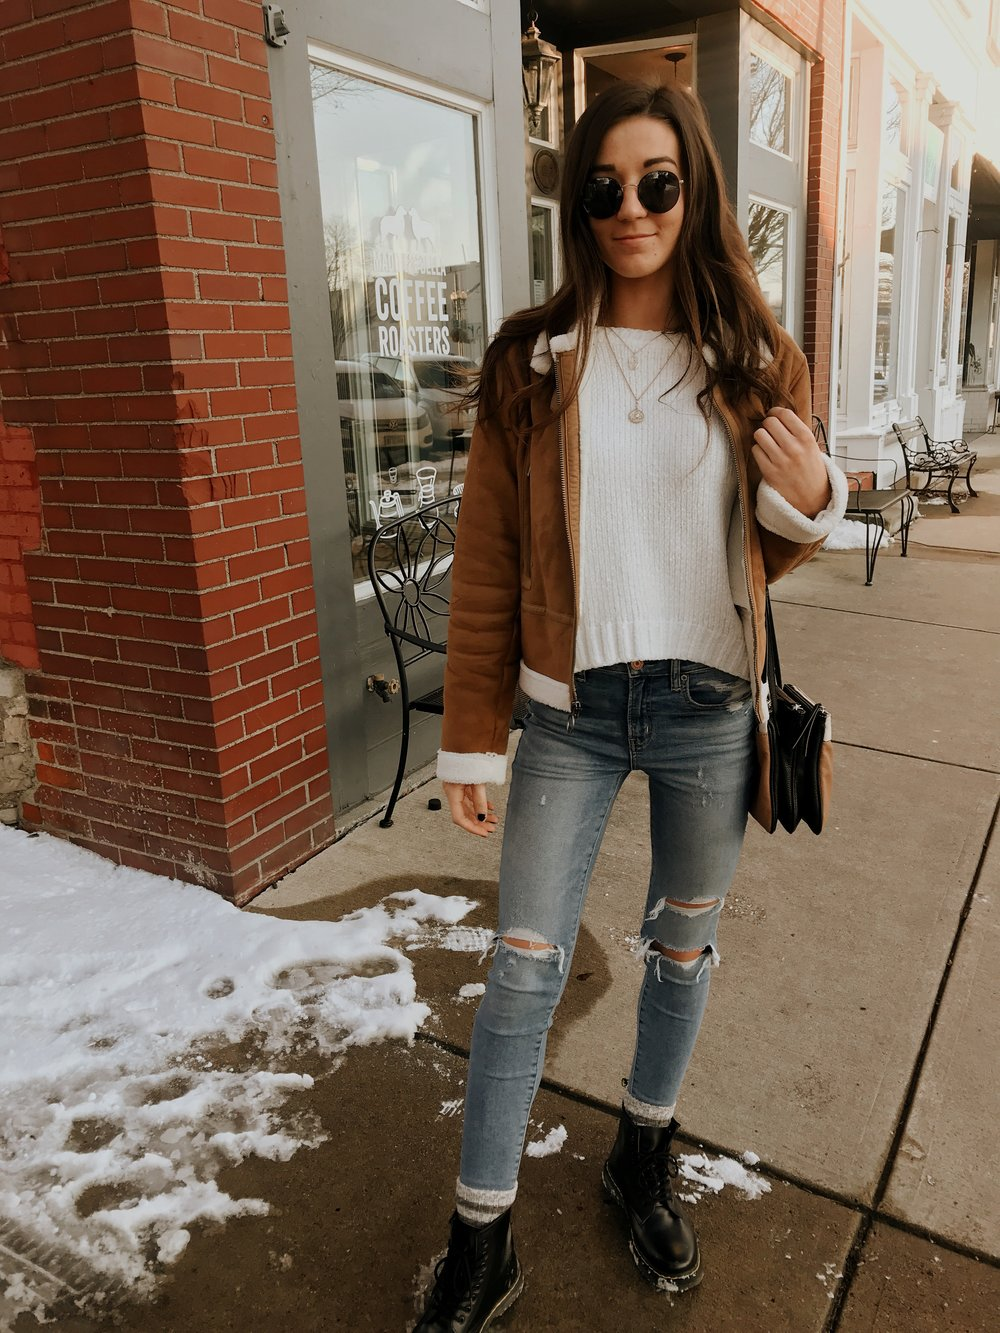 7f5f2e23d6 My go-to outfit this winter has been extremely simple  a pair of jeans